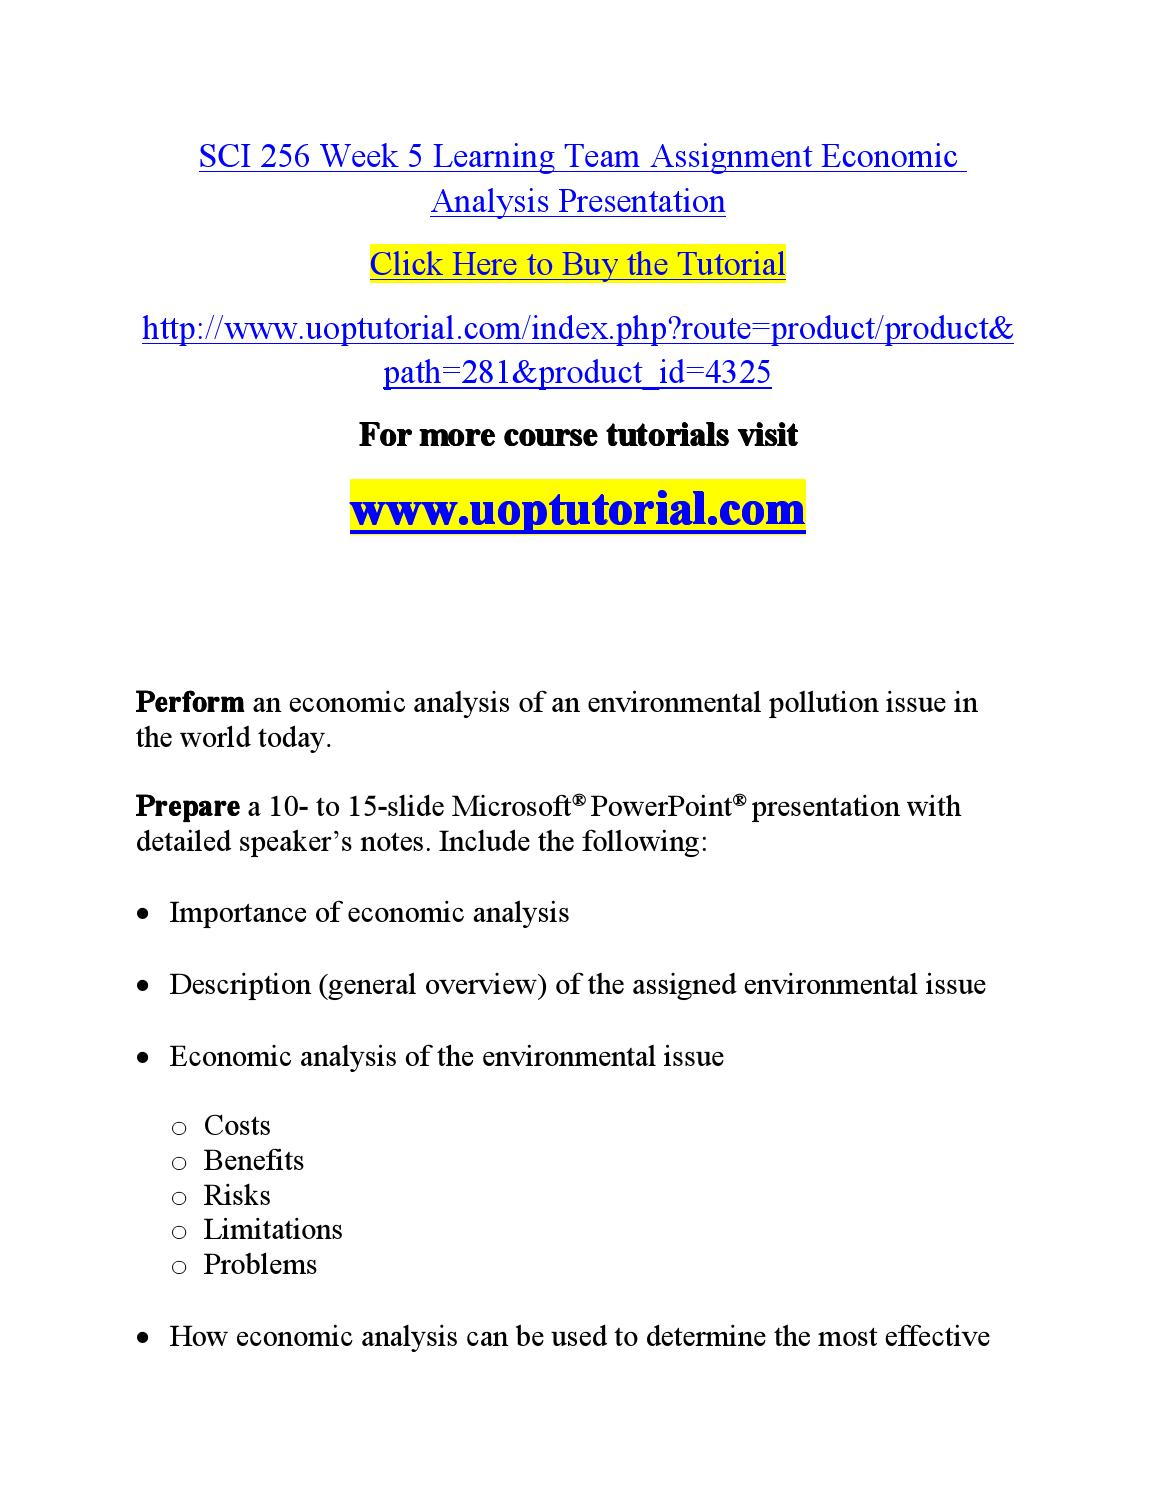 sci 256 week 5 exam Sci 256 week 5 community sustainability proposal sci 256 week 5 community sustainability proposal quality tutorials, final exams & much more search for: sci 256 week 5 environmental analysis presentation $ 999 add to cart sci 256 week 4 environmental pollution recommendation.